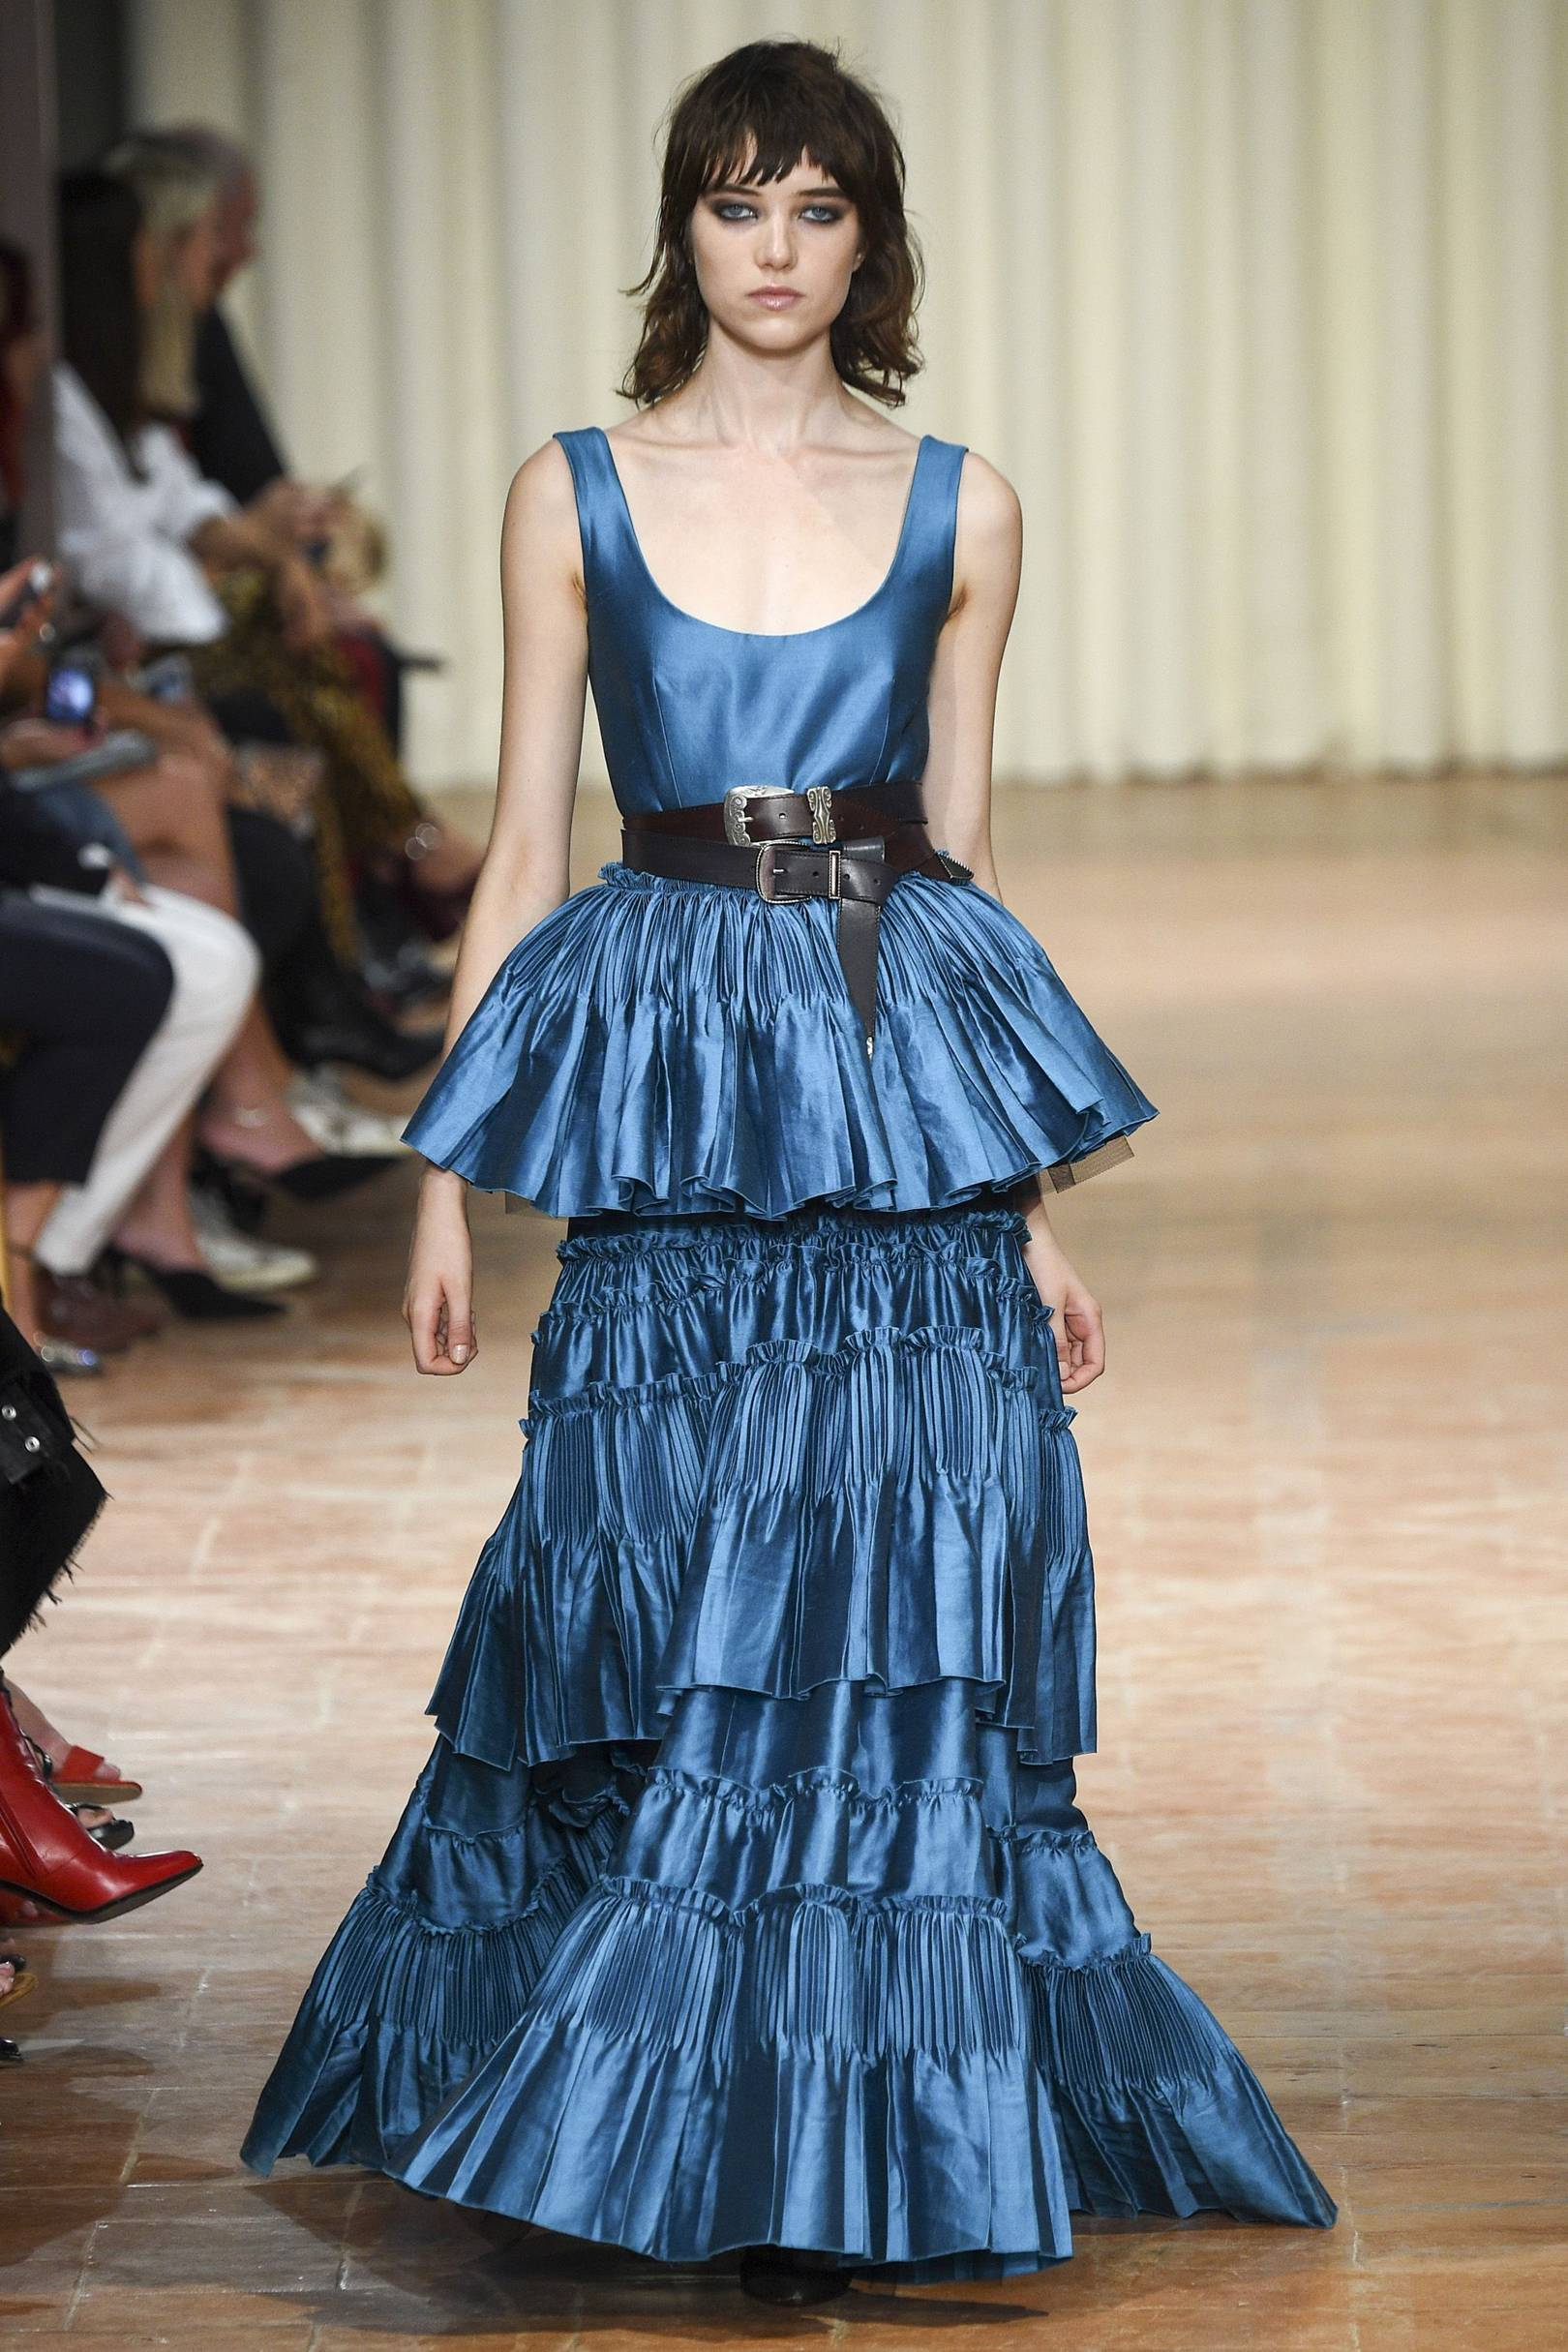 Award Season Gown Predictions From The Spring/Summer 2017 Shows ...